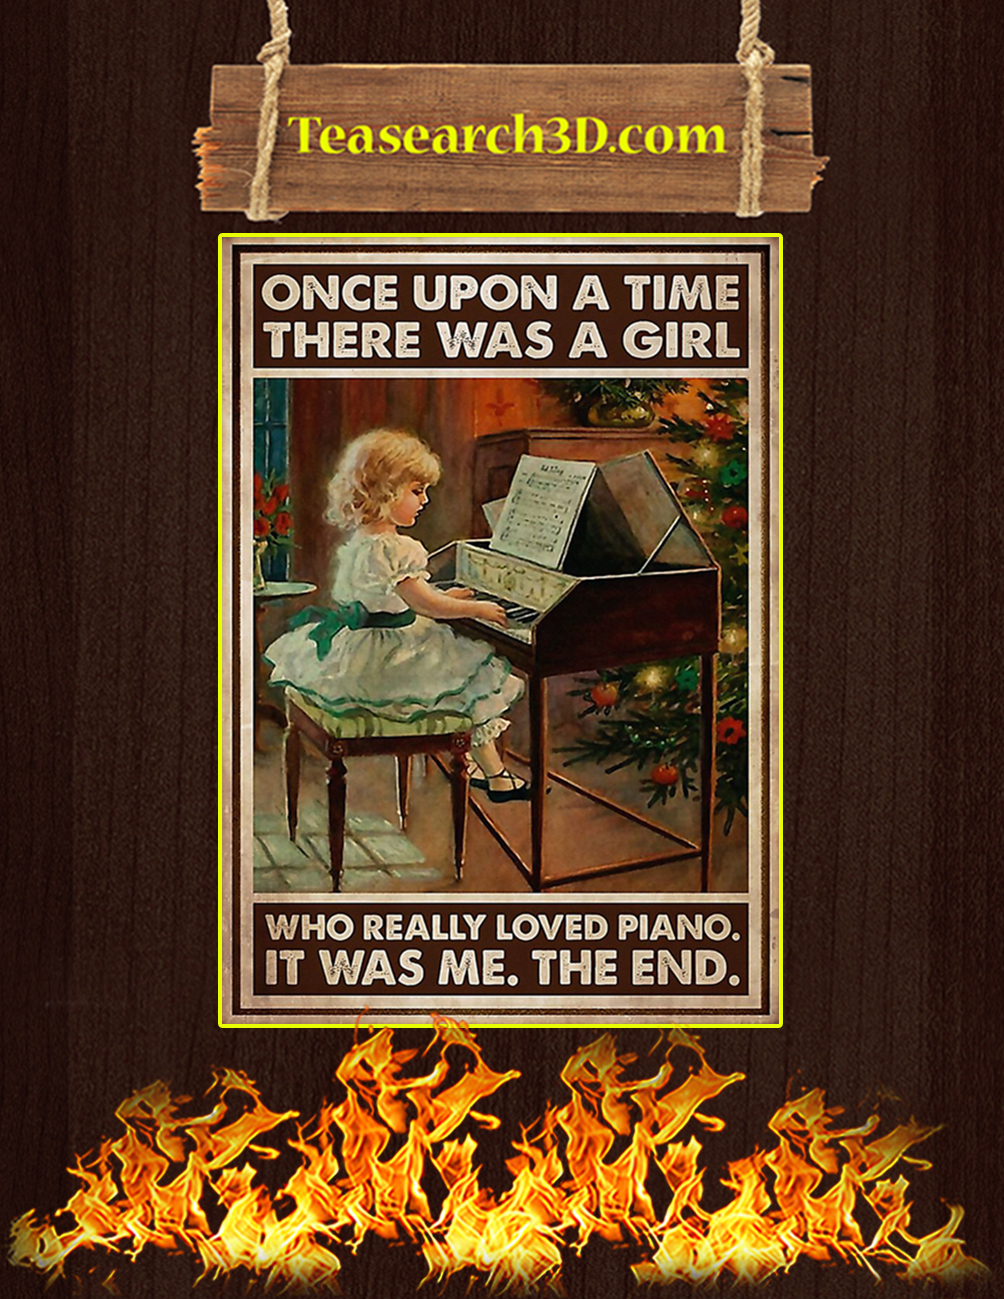 Once upon a time there was a girl who really loved piano poster